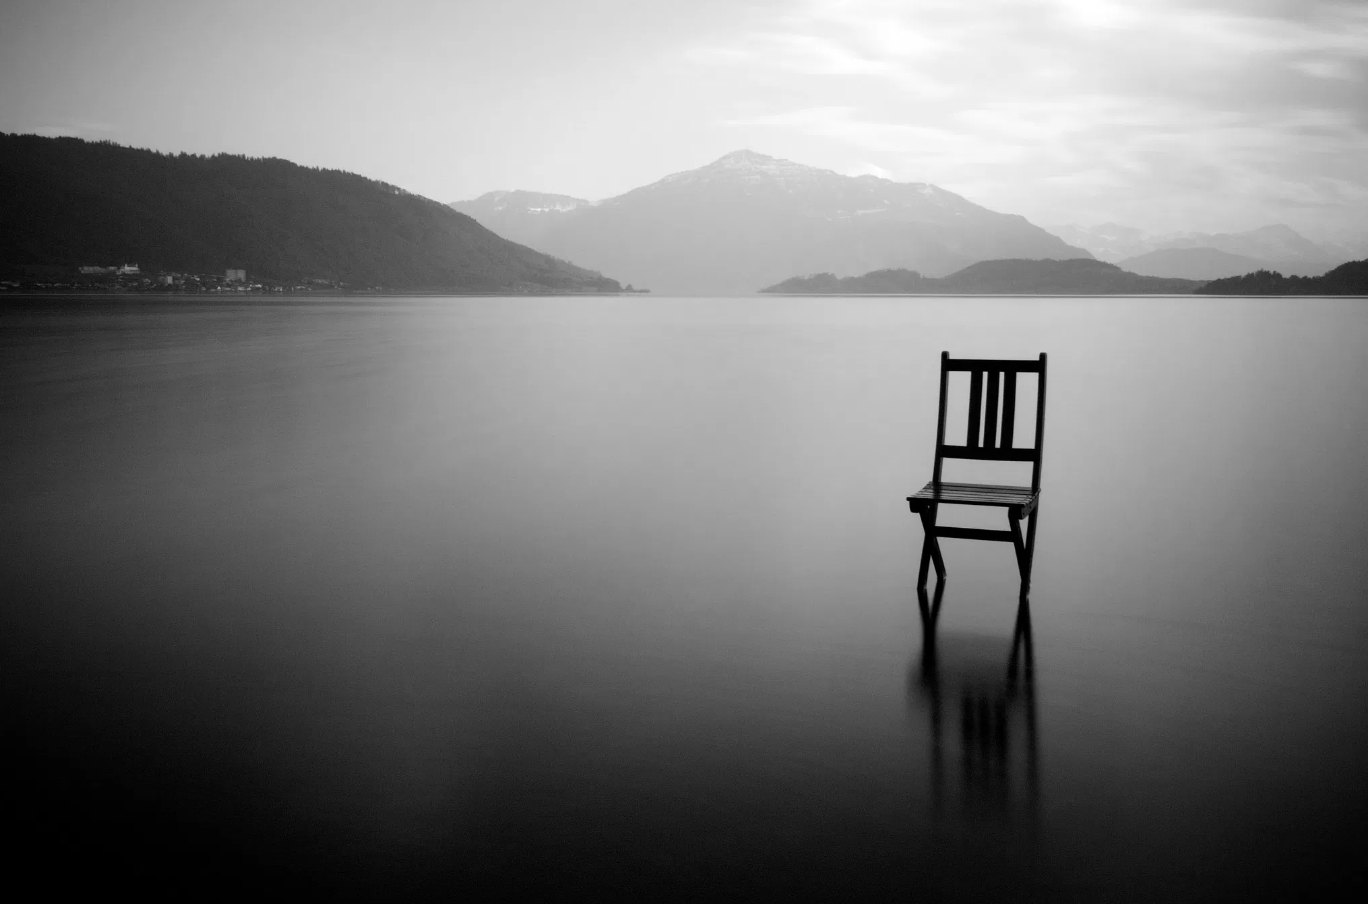 Enjoy the silence - Thomas Leuthard- CC BY